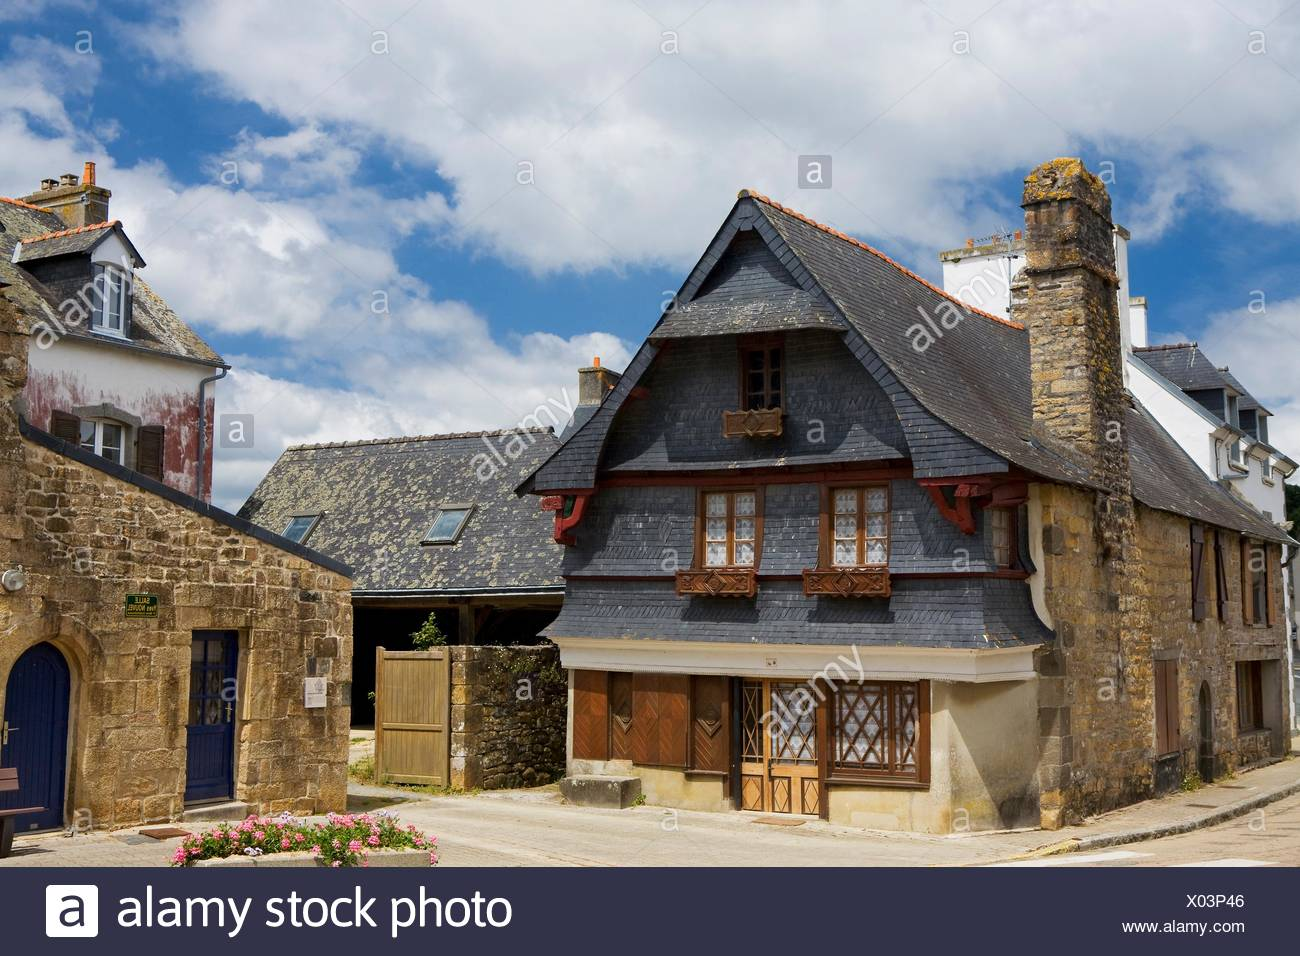 16th Century French Home - old-merchants-house-in-le-faou-around-16th-and-17th-century-finistre-department-brittany-region-france-X03P46_Download 16th Century French Home - old-merchants-house-in-le-faou-around-16th-and-17th-century-finistre-department-brittany-region-france-X03P46  Picture_92728.jpg